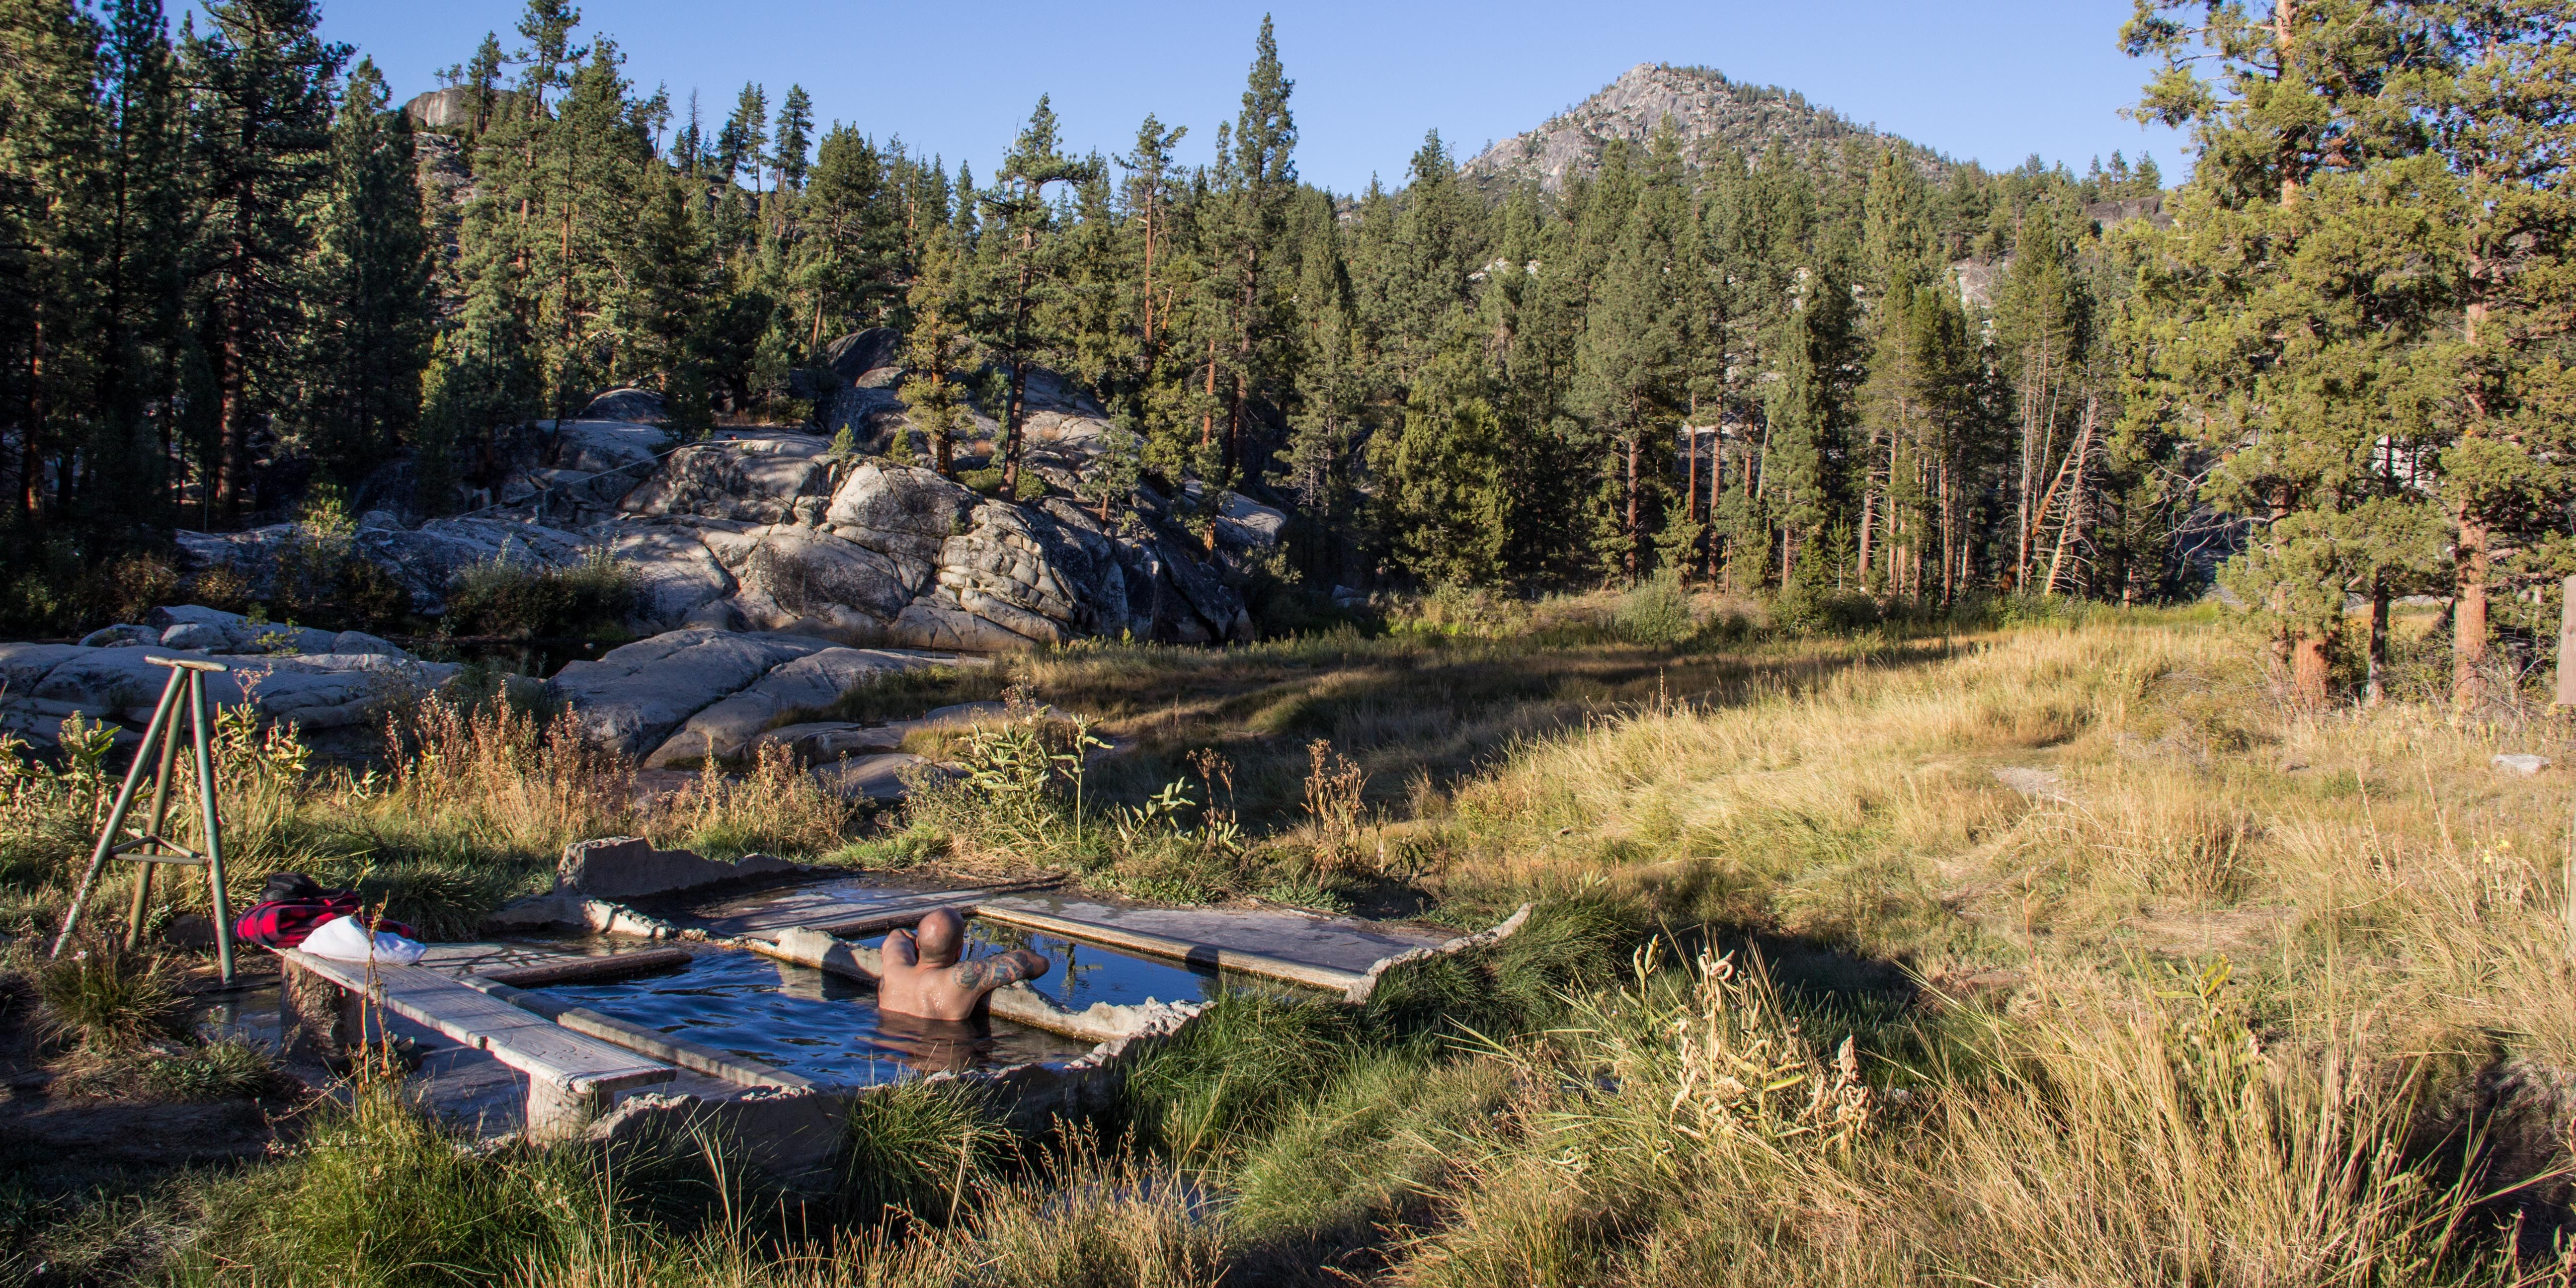 California is blessed to have its fair share of hot springs, many of which are found in and around the Sierra Nevada. The riverside pools of Mono Hot Springs are perhaps the most remote of these springs still accessible by car.